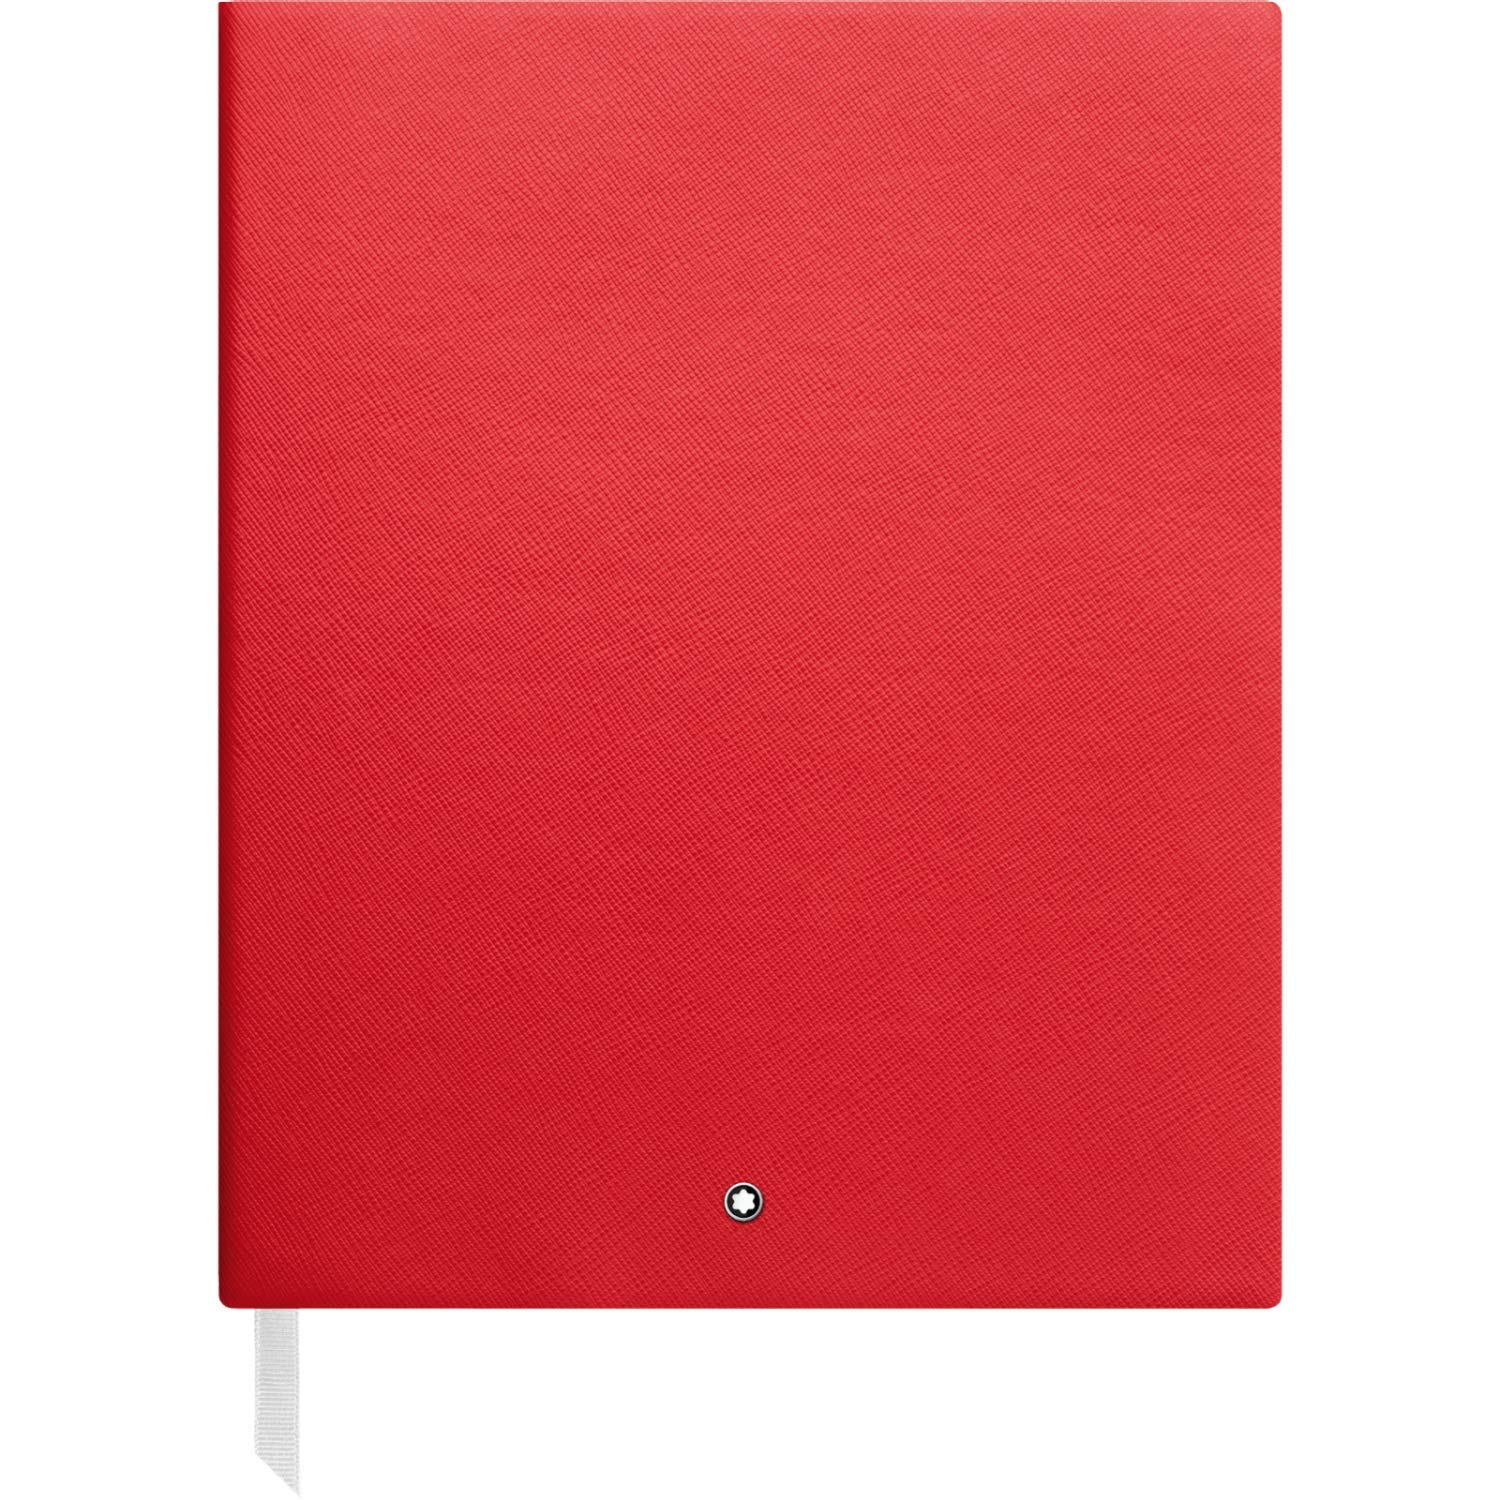 Sta Sketch Book #149 Red Large